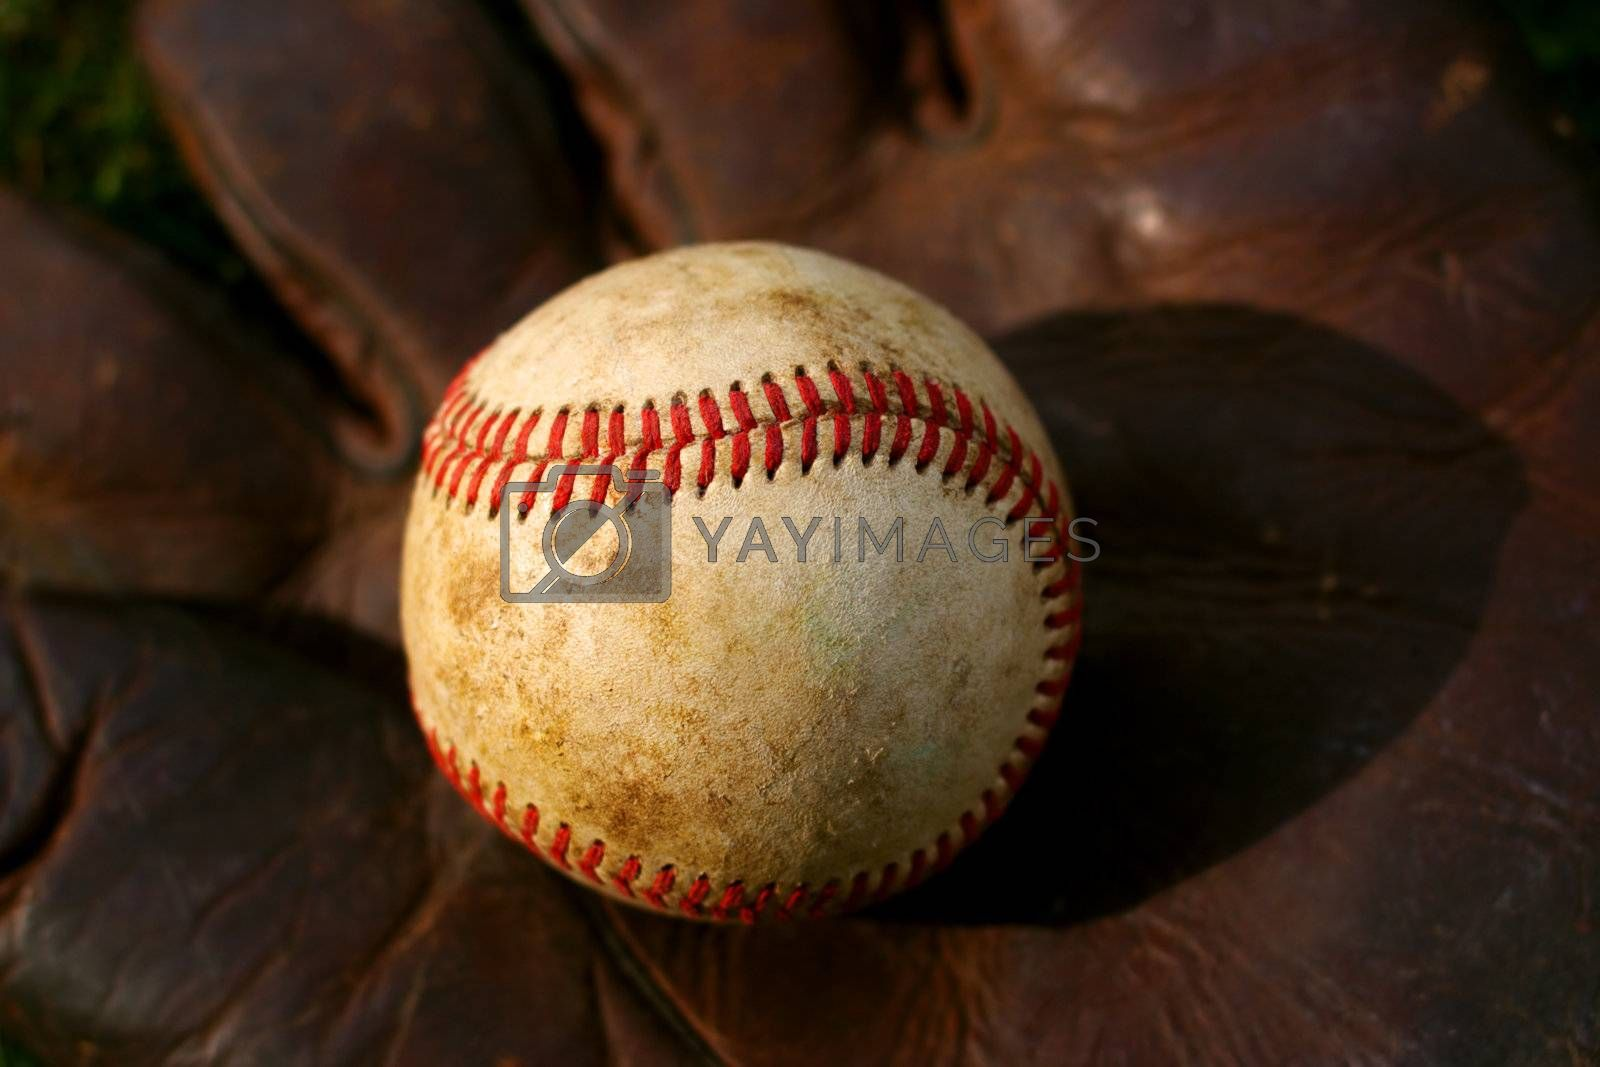 Closeup of an old baseball on a vintage glove